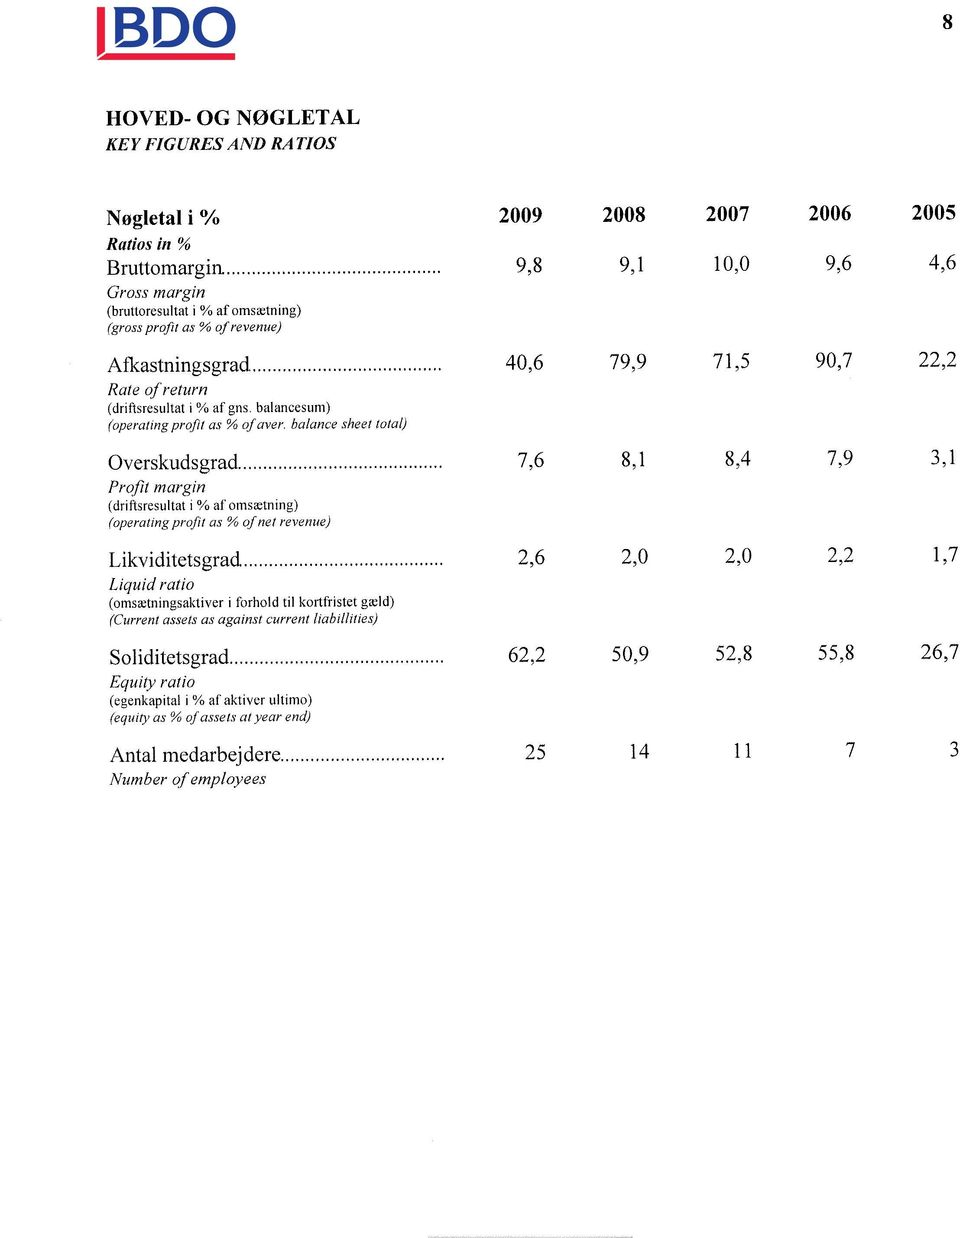 balance sheet total) Overskudsgrad 7,6 8,1 8,4 7,9 3,1 Profit margin (driftsresultat i % at omsætning) (operating profit as % of net revenue) Likviditetsgrad 2,6 2,0 2,0 2,2 1,7 Liquid ratio